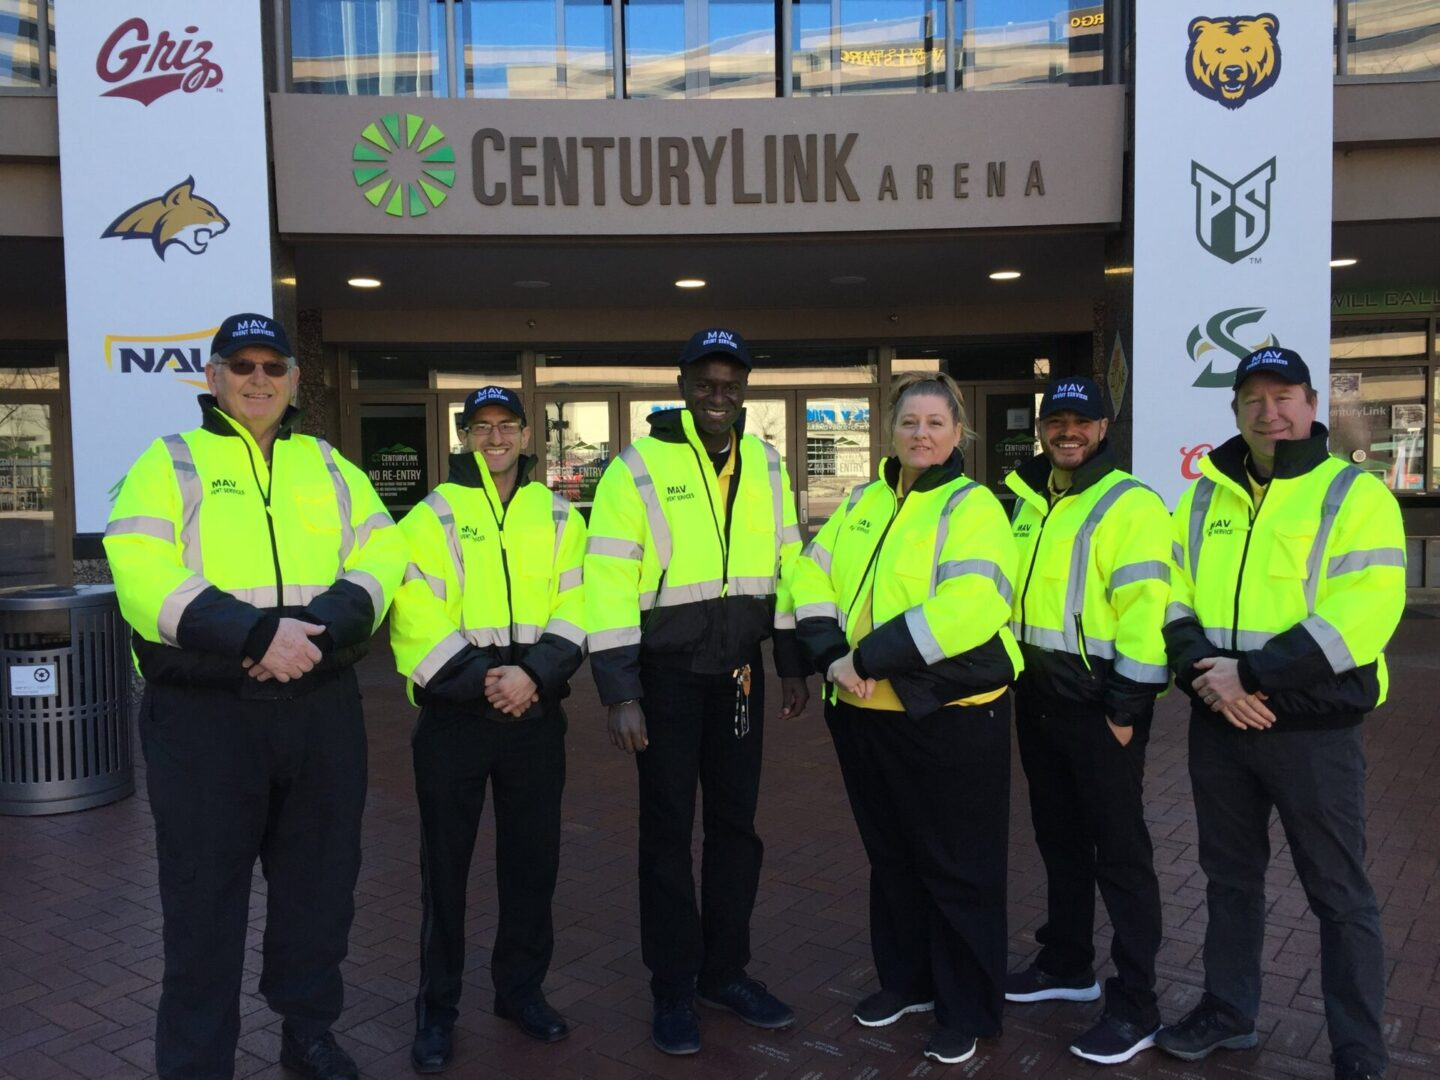 Security team guarding the Century Link Arena